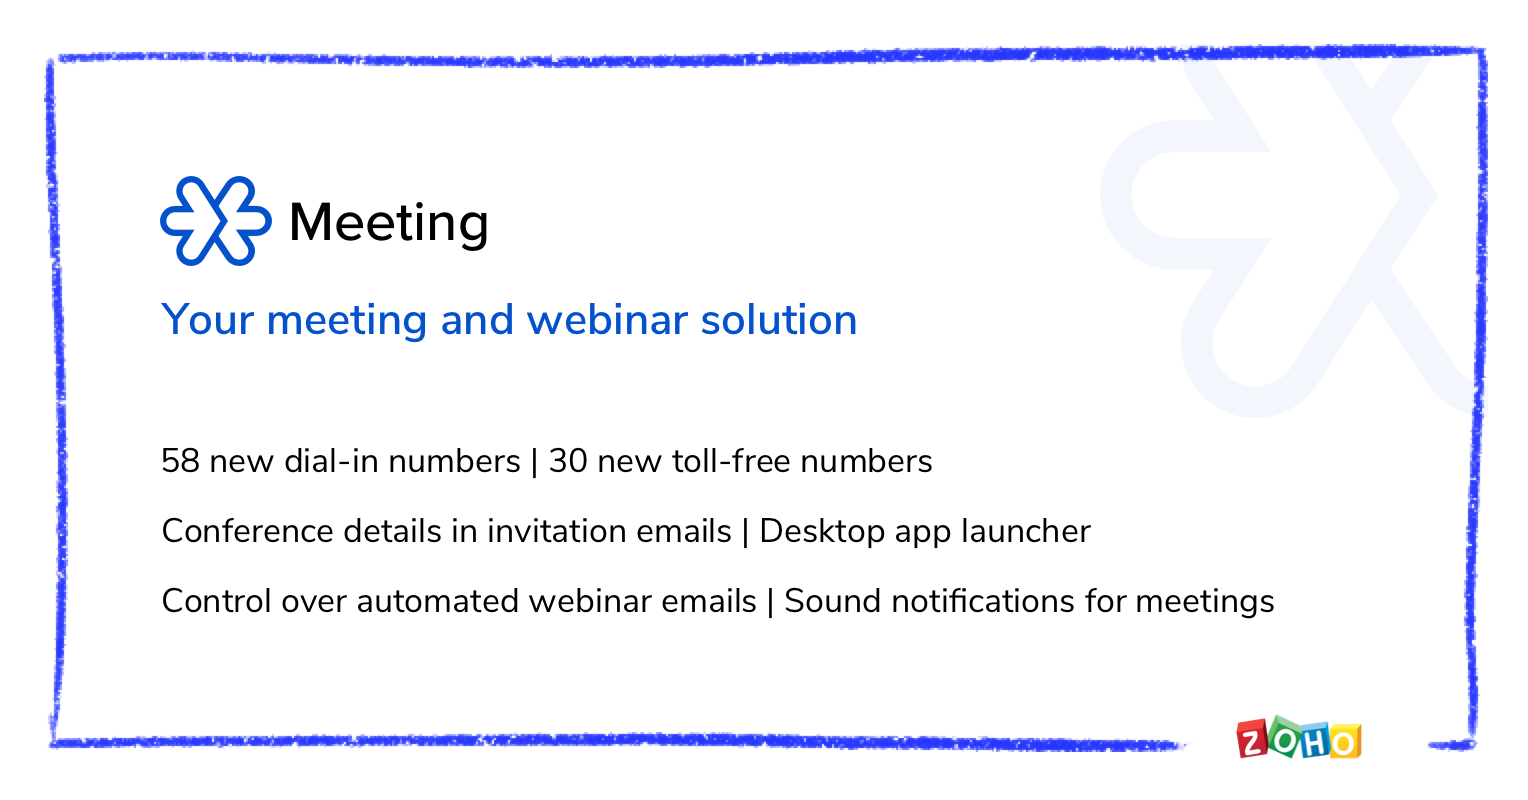 New dial-in and toll-free numbers, Conference details in invitation emails, Control over automated webinar emails, and more from Zoho Meeting.